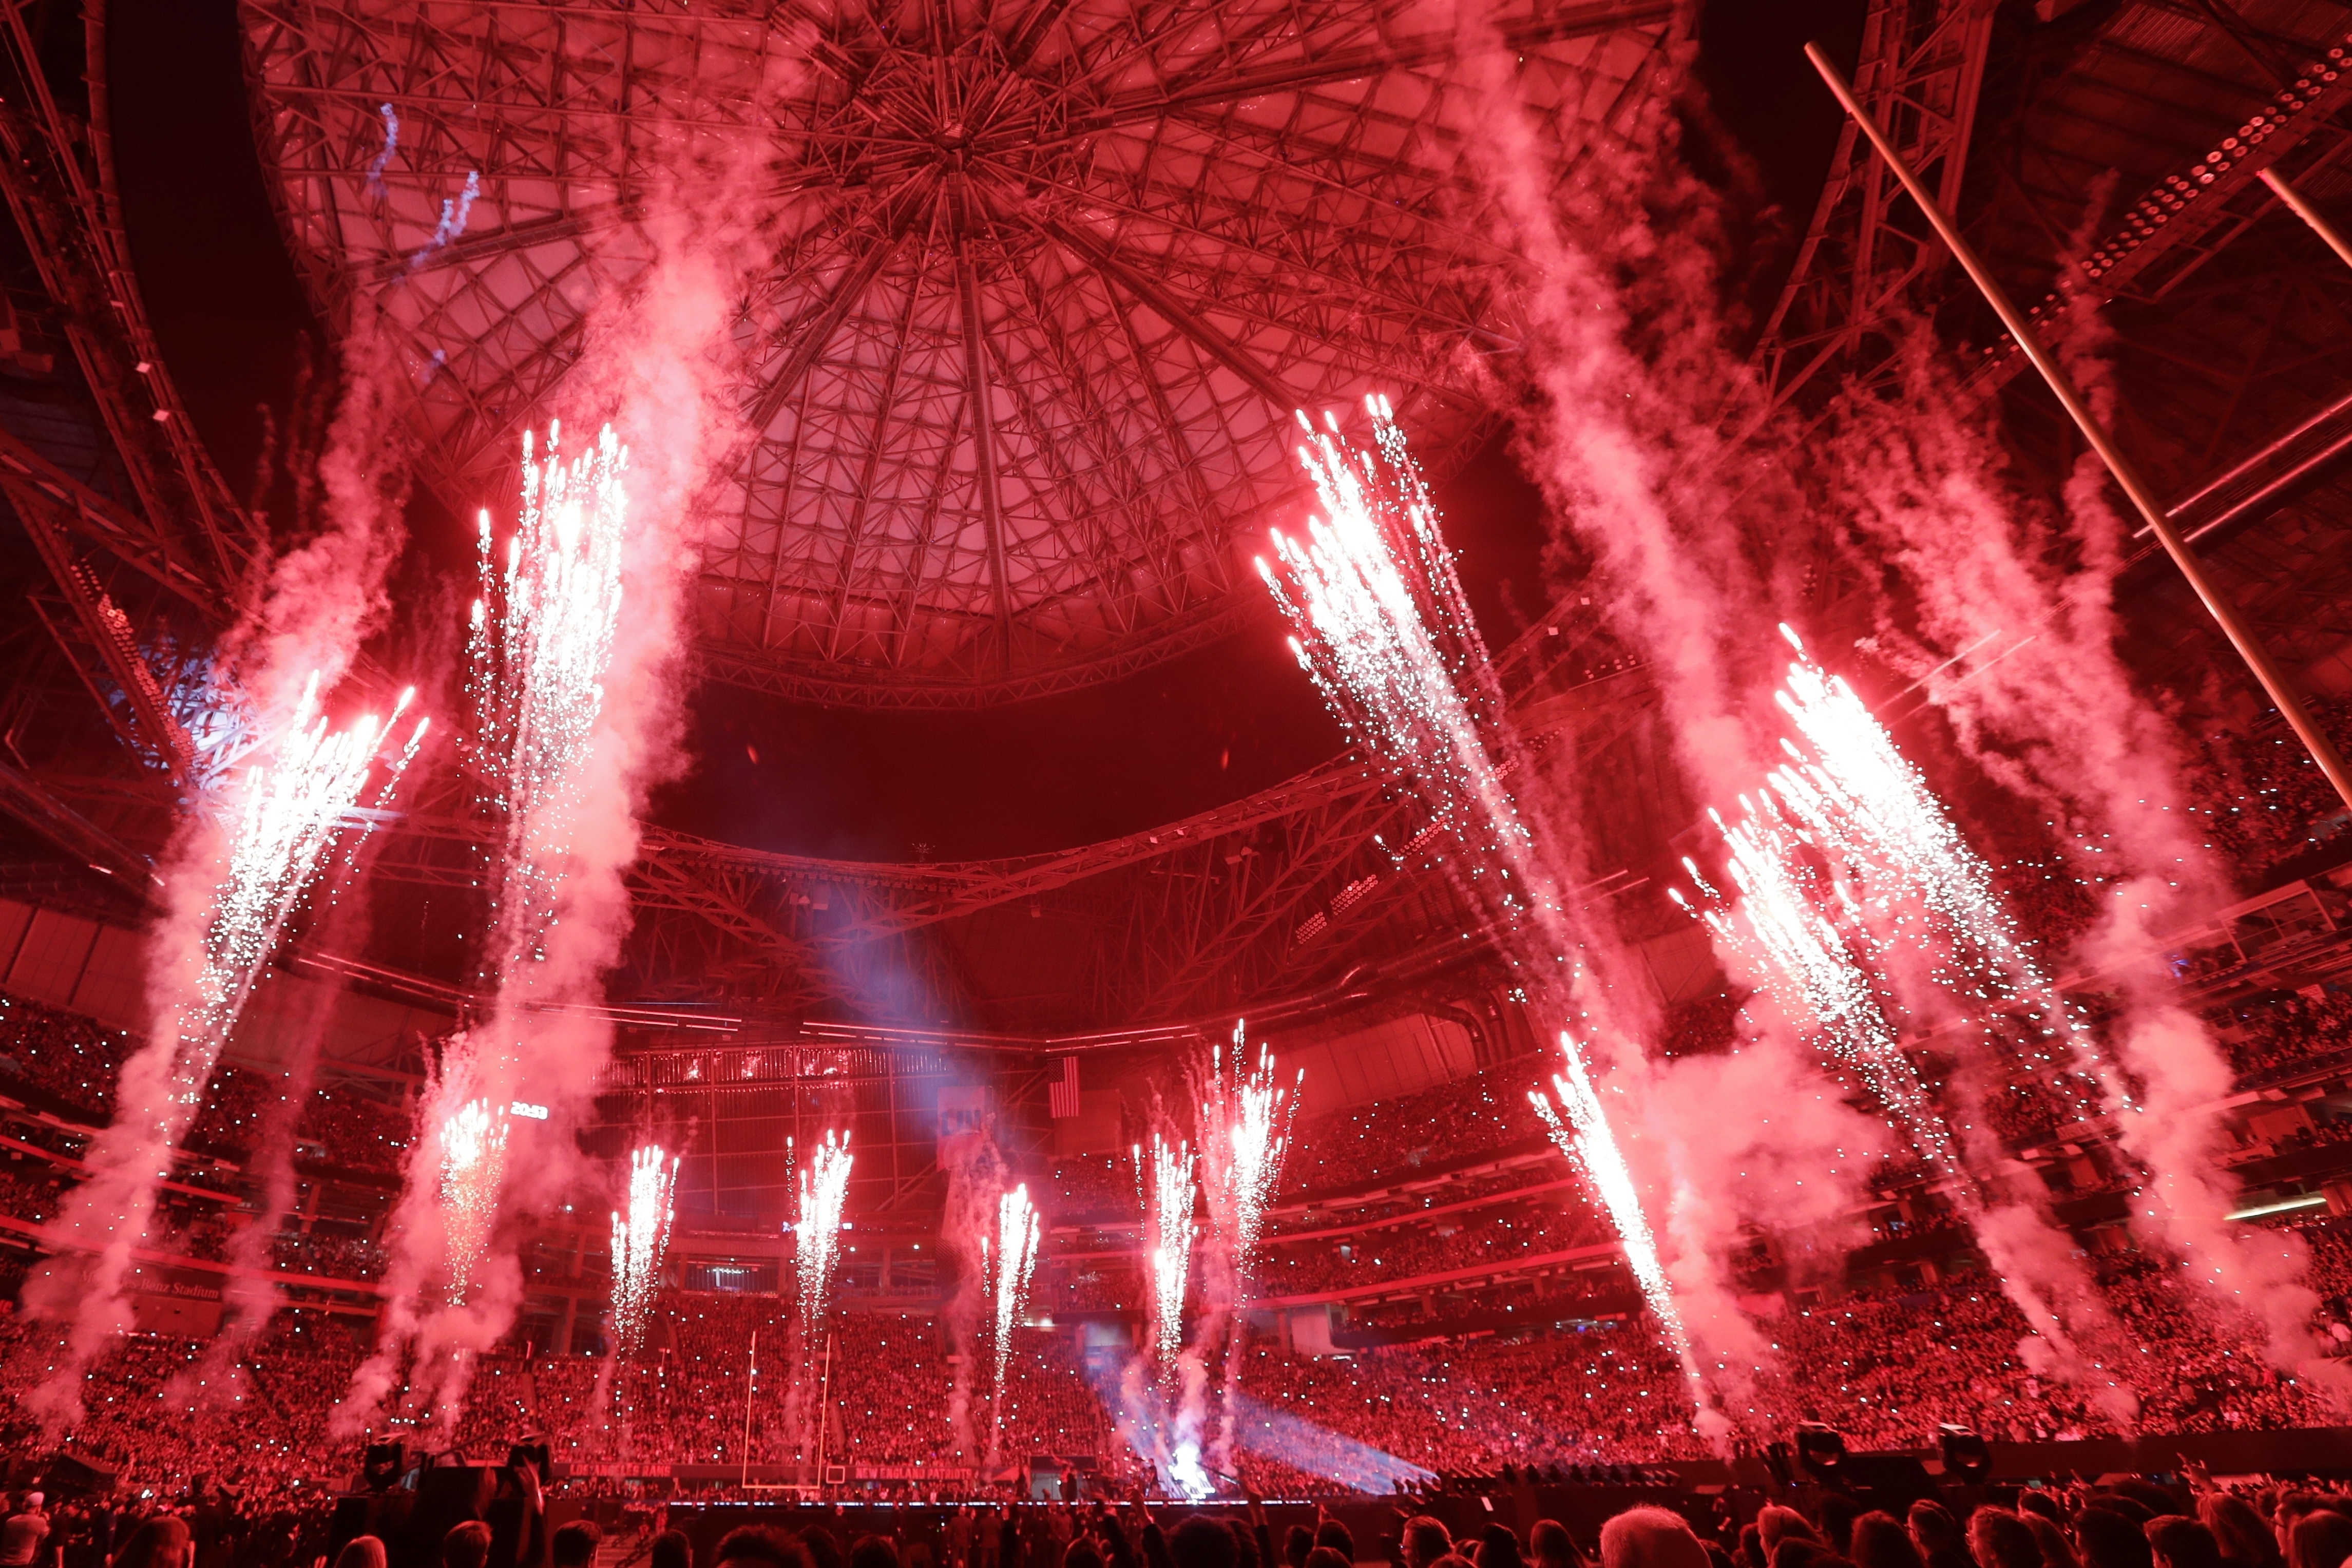 "<div class=""meta image-caption""><div class=""origin-logo origin-image ap""><span>AP</span></div><span class=""caption-text"">Fireworks go off during halftime of the NFL Super Bowl 53 football game between the Los Angeles Rams and the New England Patriots Sunday, Feb. 3, 2019, in Atlanta. (AP Photo/Frank Franklin II)</span></div>"